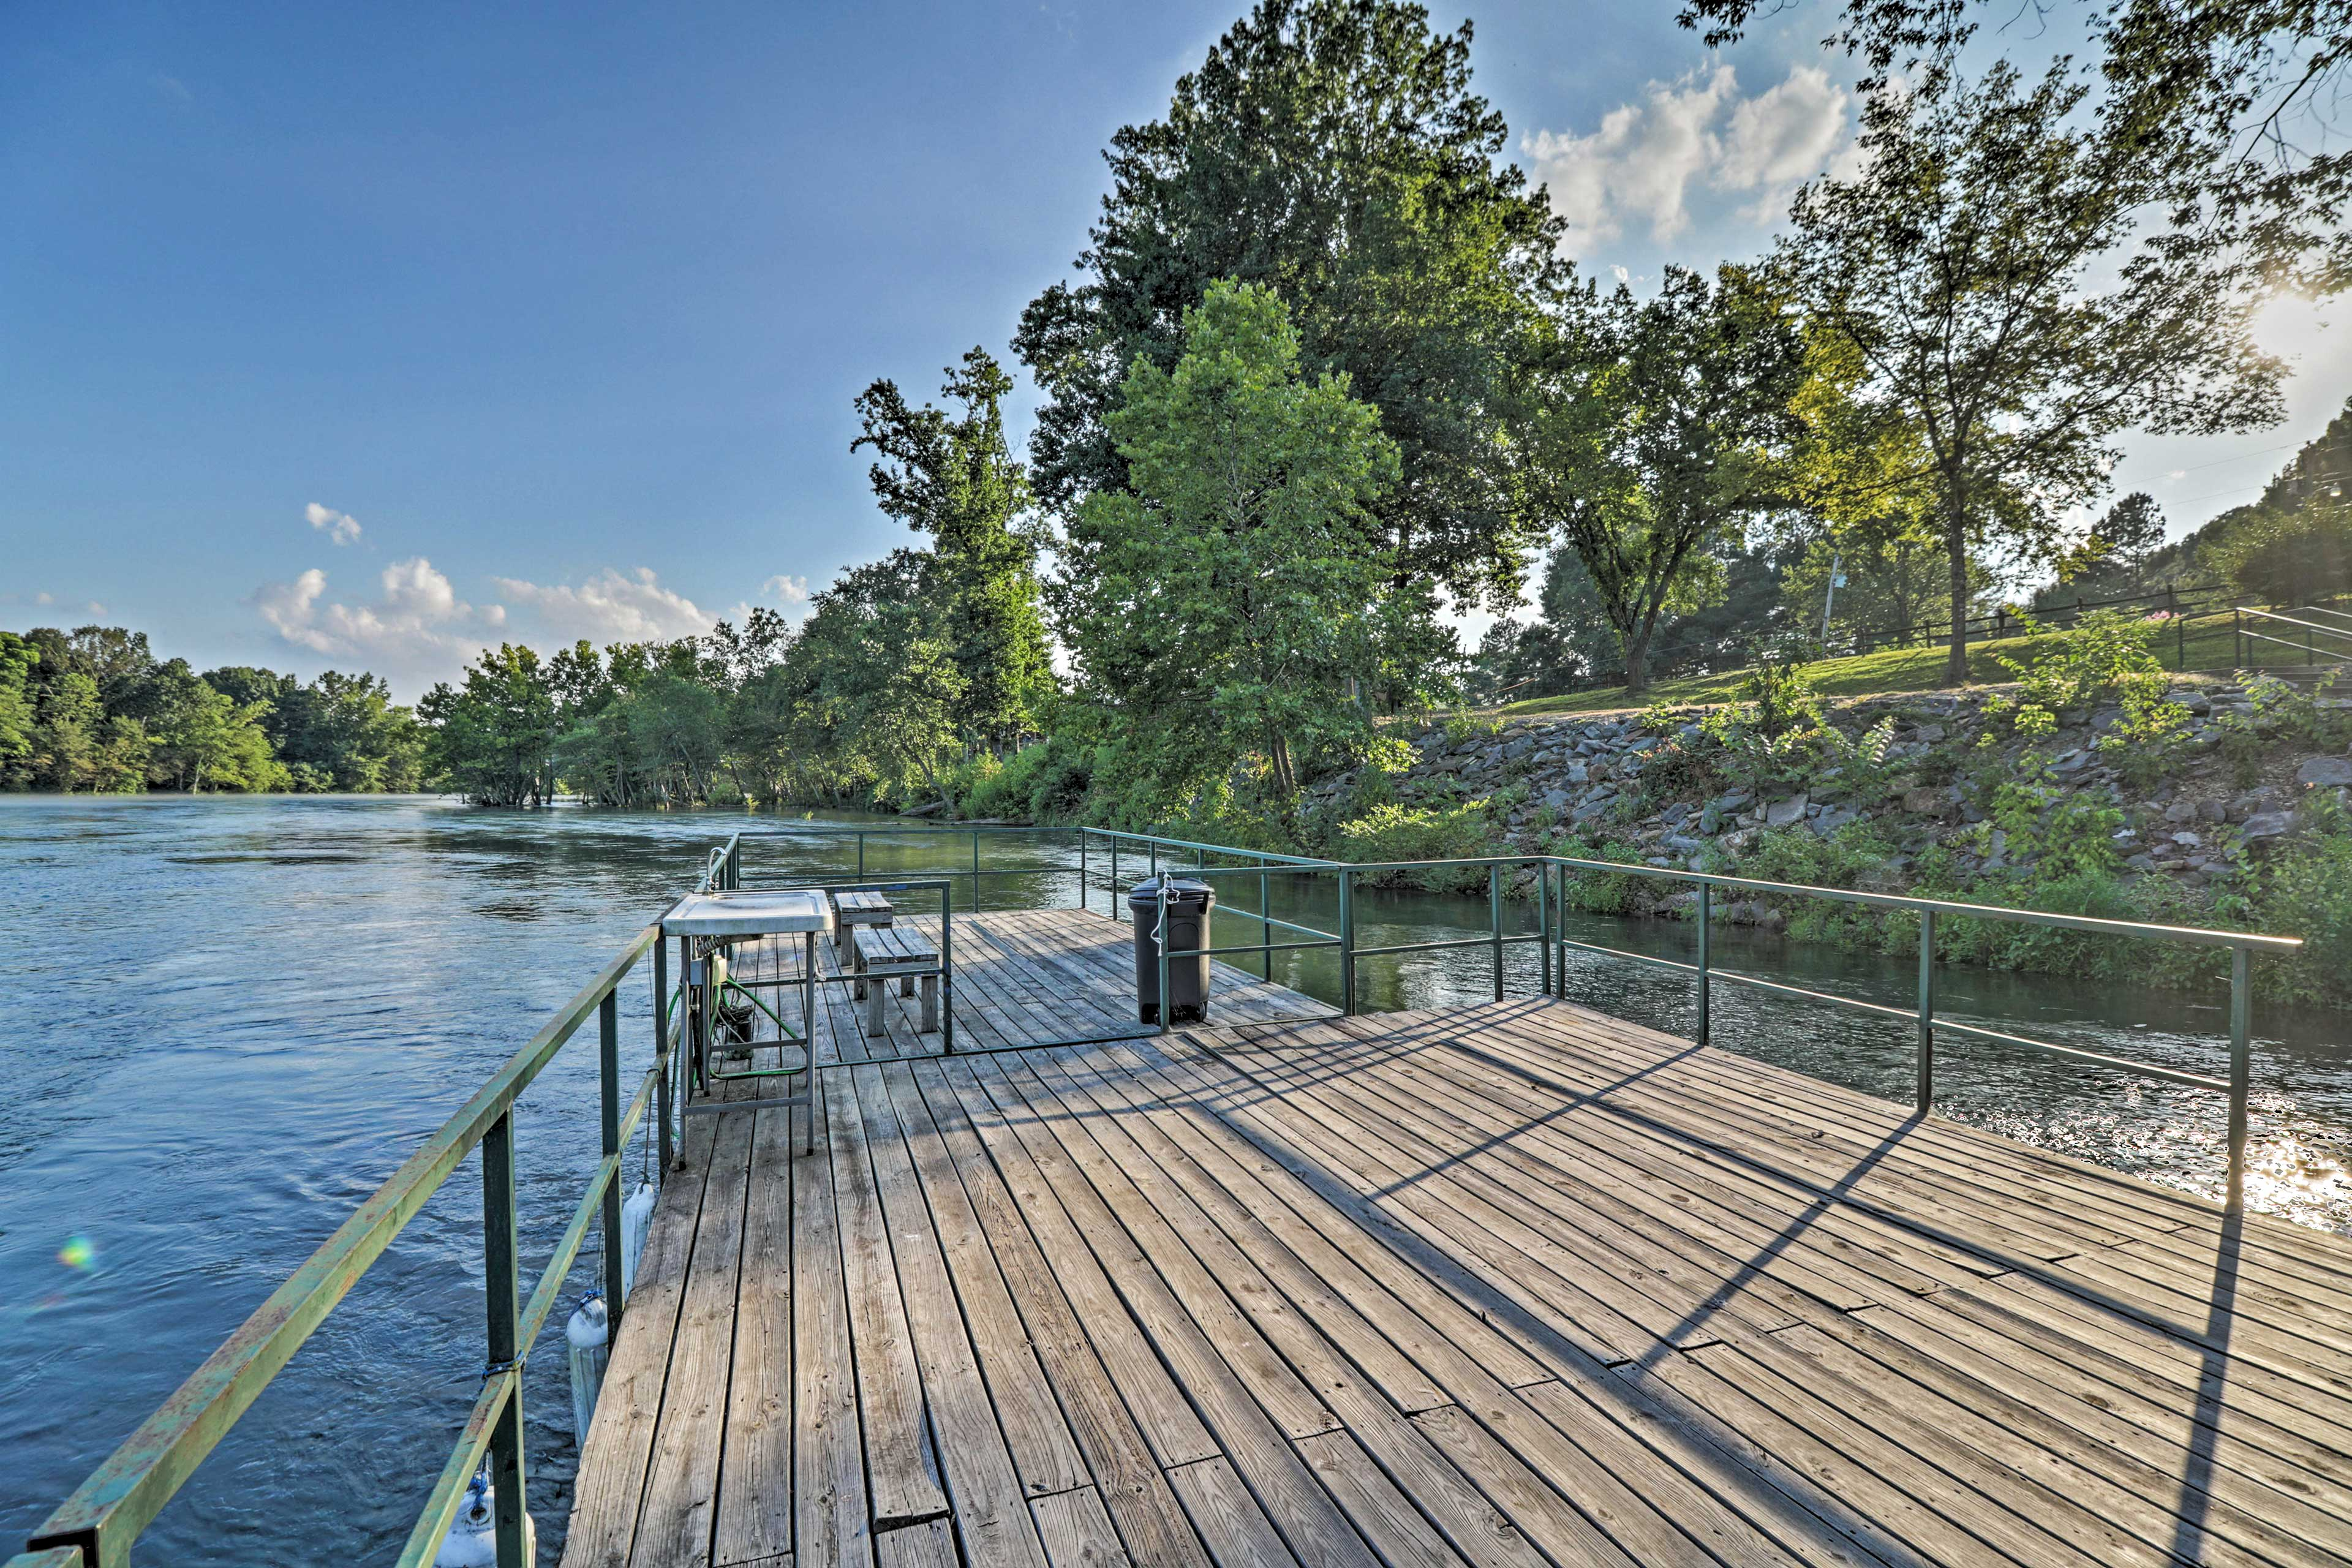 Take no more than a few stops from your back door to access the community dock.